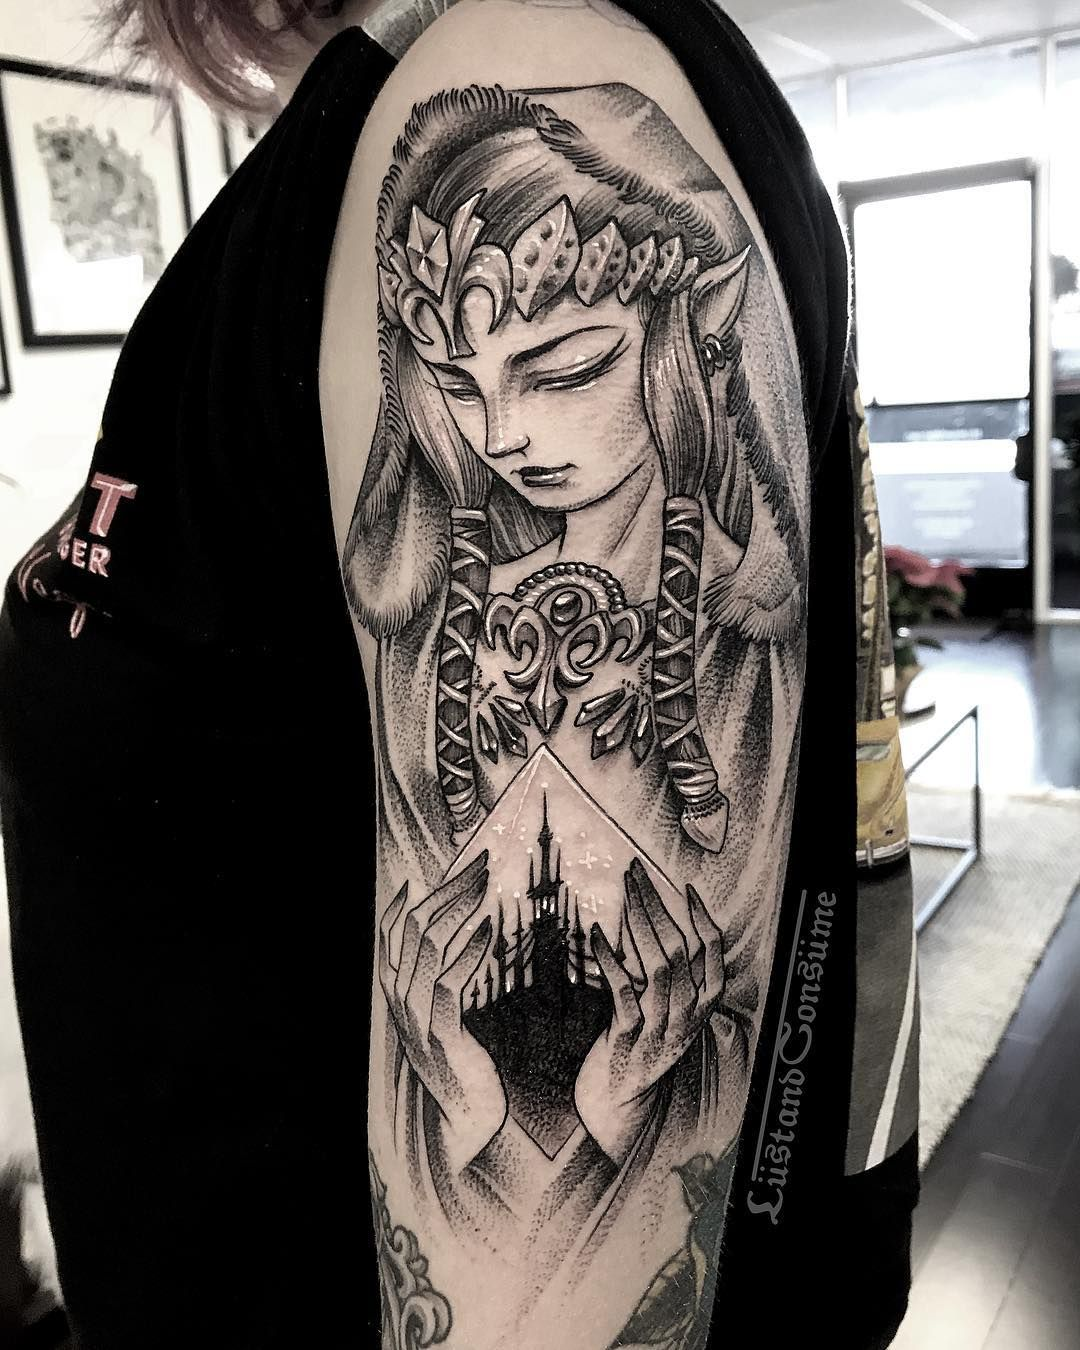 3 535 Likes 44 Comments Phil Tworavens Lustandconsume On Instagram Twilight Princess Thanks So Mu Zelda Tattoo Princess Tattoo Zelda Twilight Princess